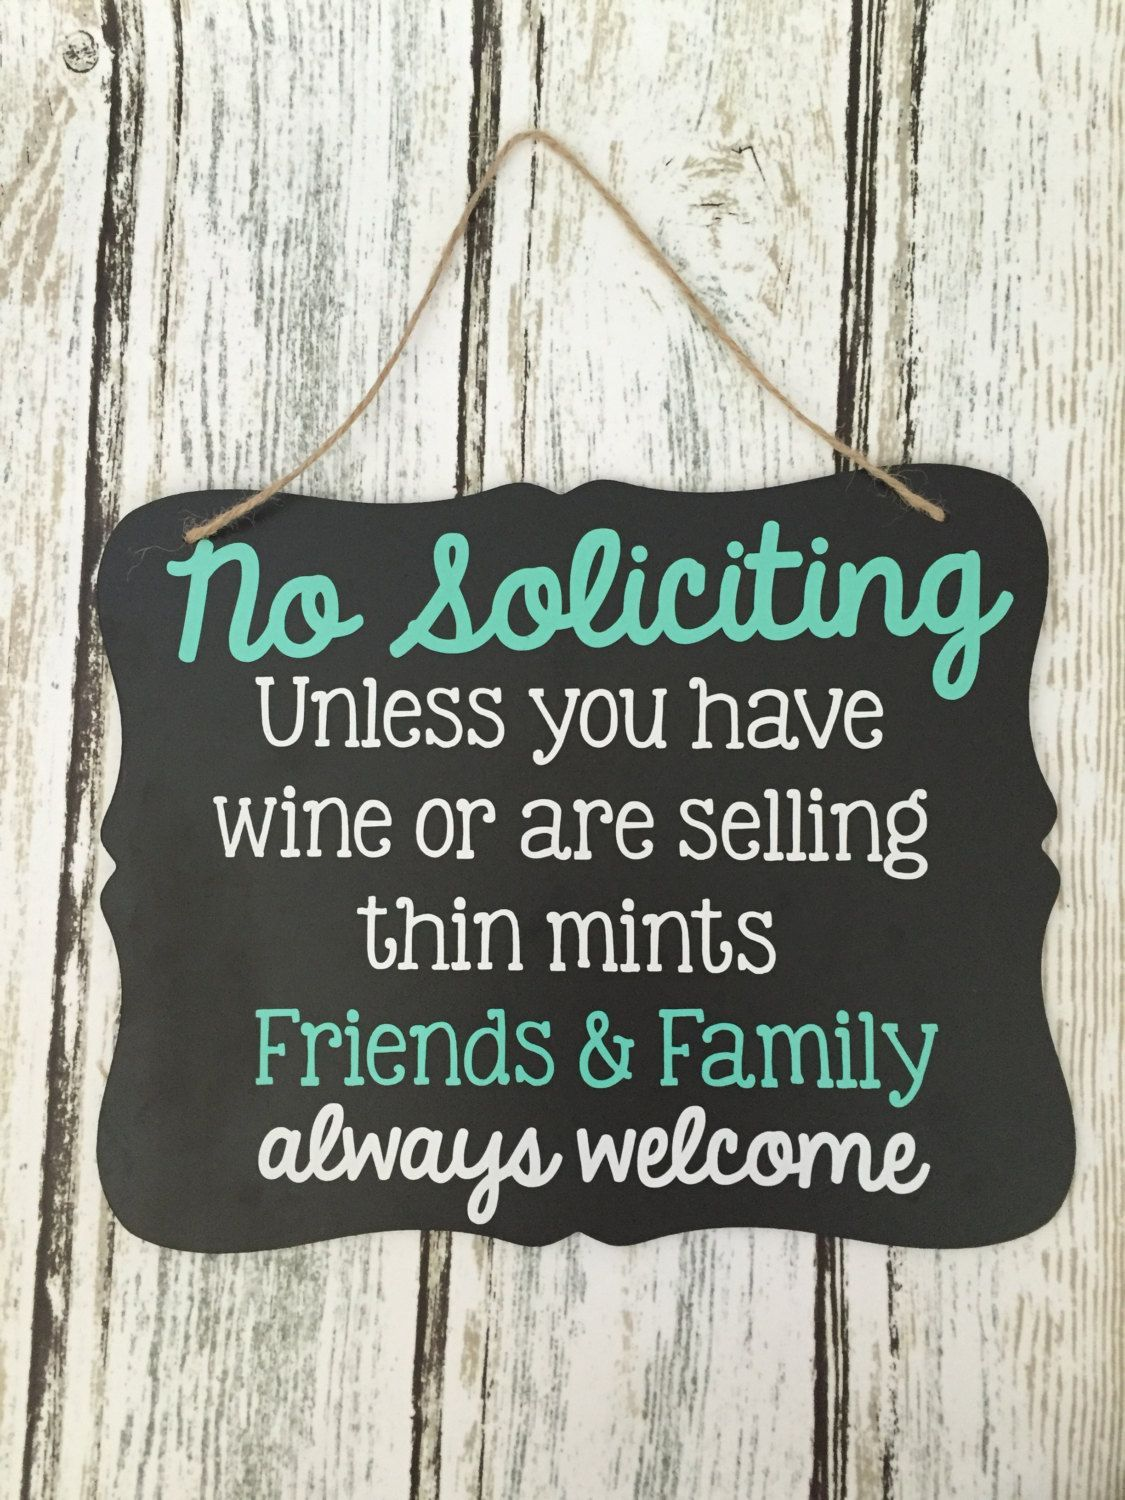 No Soliciting Sign - Thin Mints Soliciting Sign - Wine Soliciting Sign - Chalkboard Sign - Funny Solicitation Sign #nosolicitingsignfunny No Soliciting Sign - Thin Mints Soliciting Sign - Wine Soliciting Sign - Chalkboard Sign - Funny Solicitation Sign #nosolicitingsignfunny